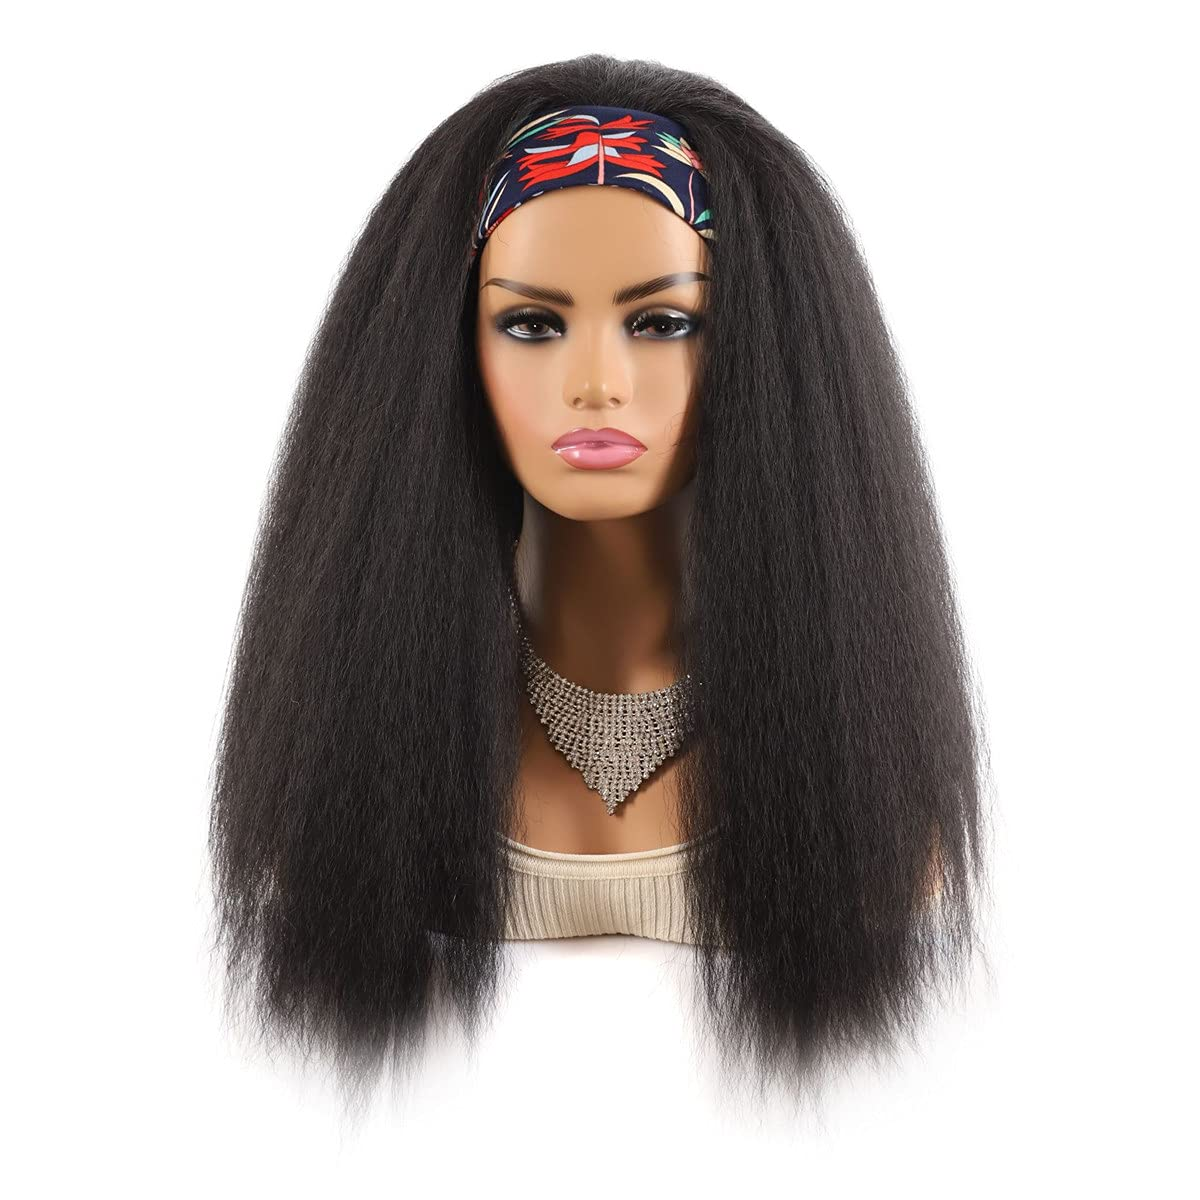 New products Max 48% OFF world's highest quality popular Headband Wigs for Black M Machine Full Women